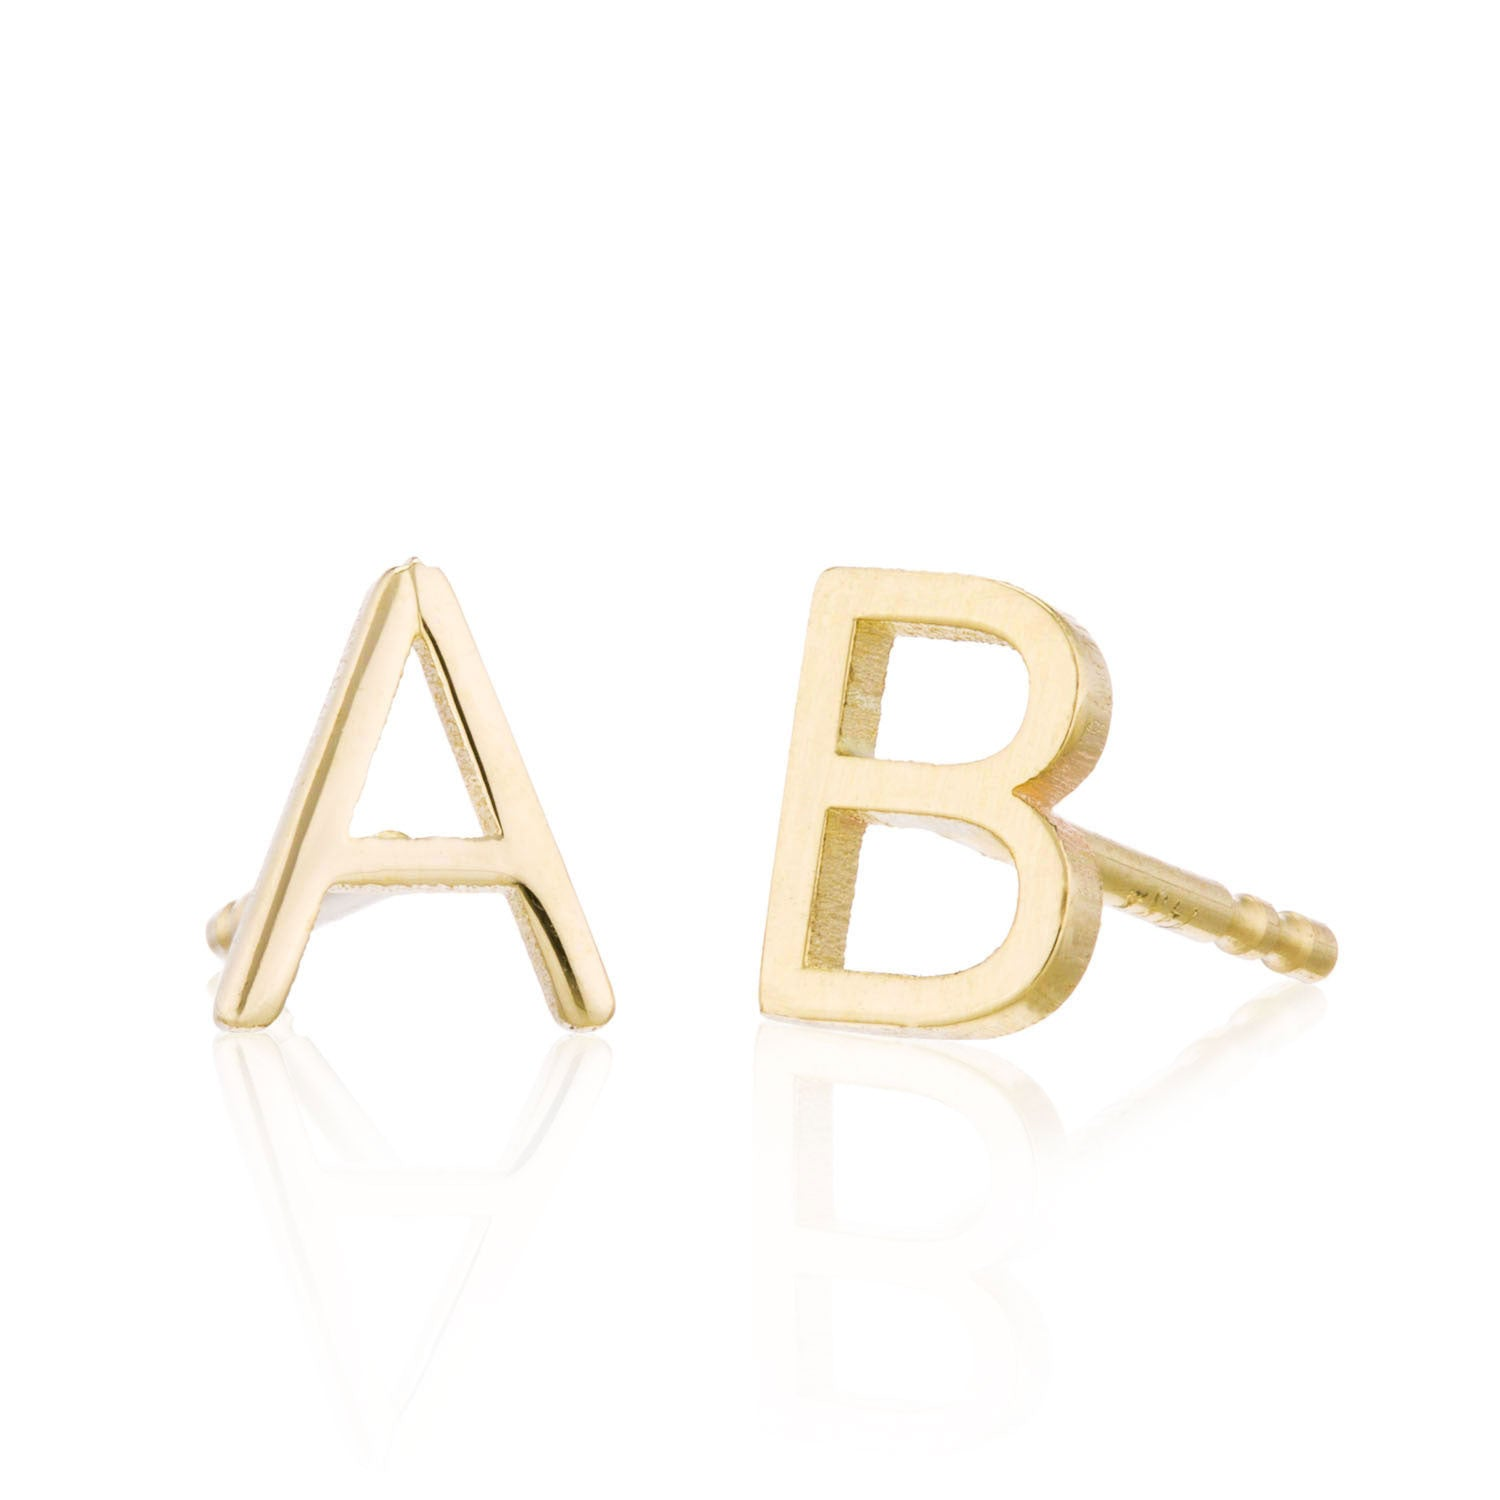 Alphabet letter initials 14K Yellow gold stud earrings at Valerie Madison Jewelry